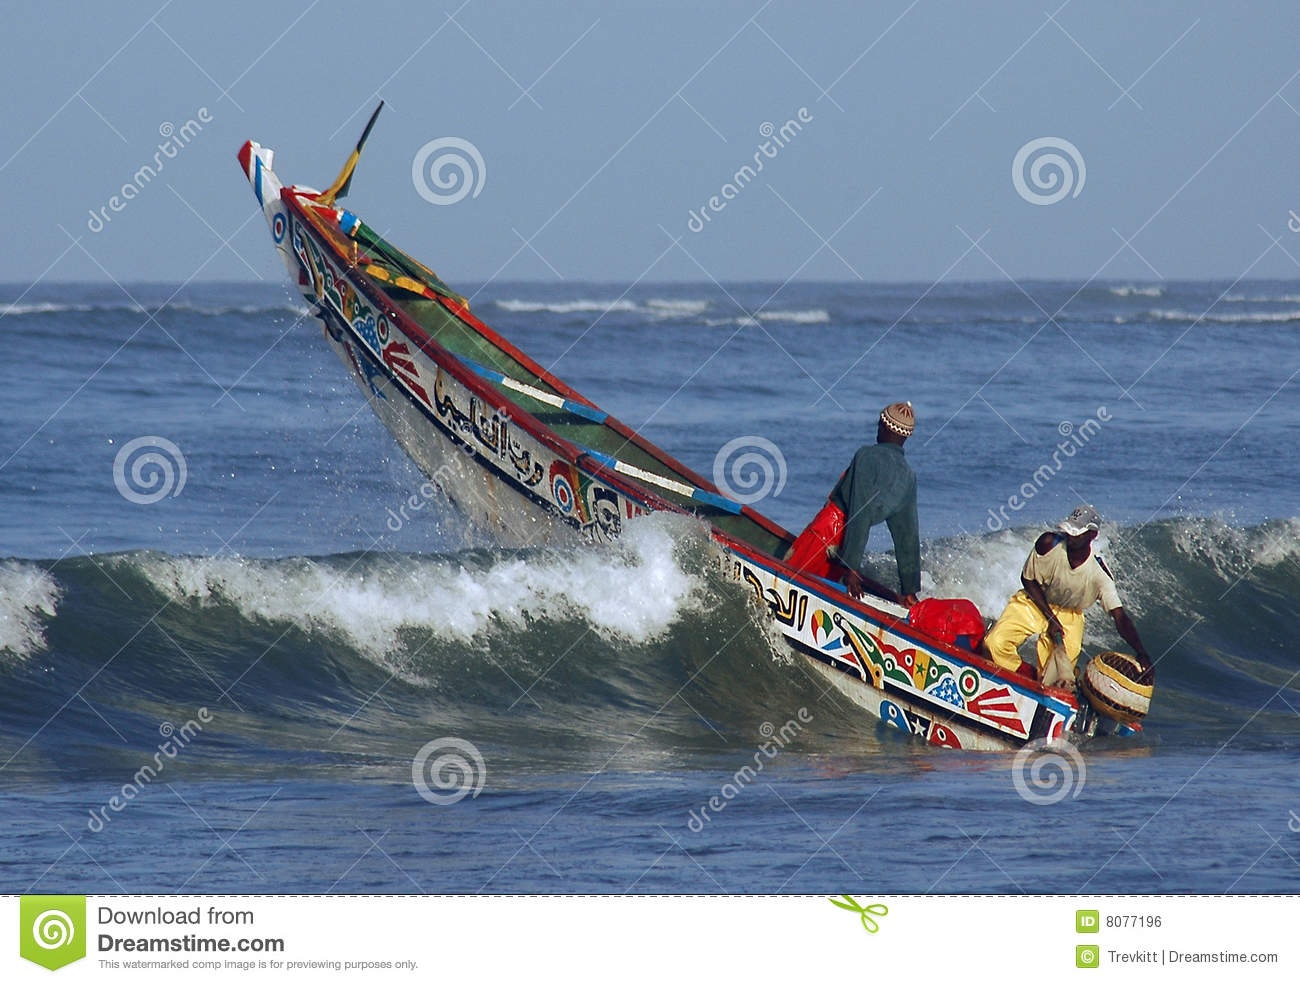 Fishing Boat Going Over A Wave Royalty Free Stock Image - Image ...